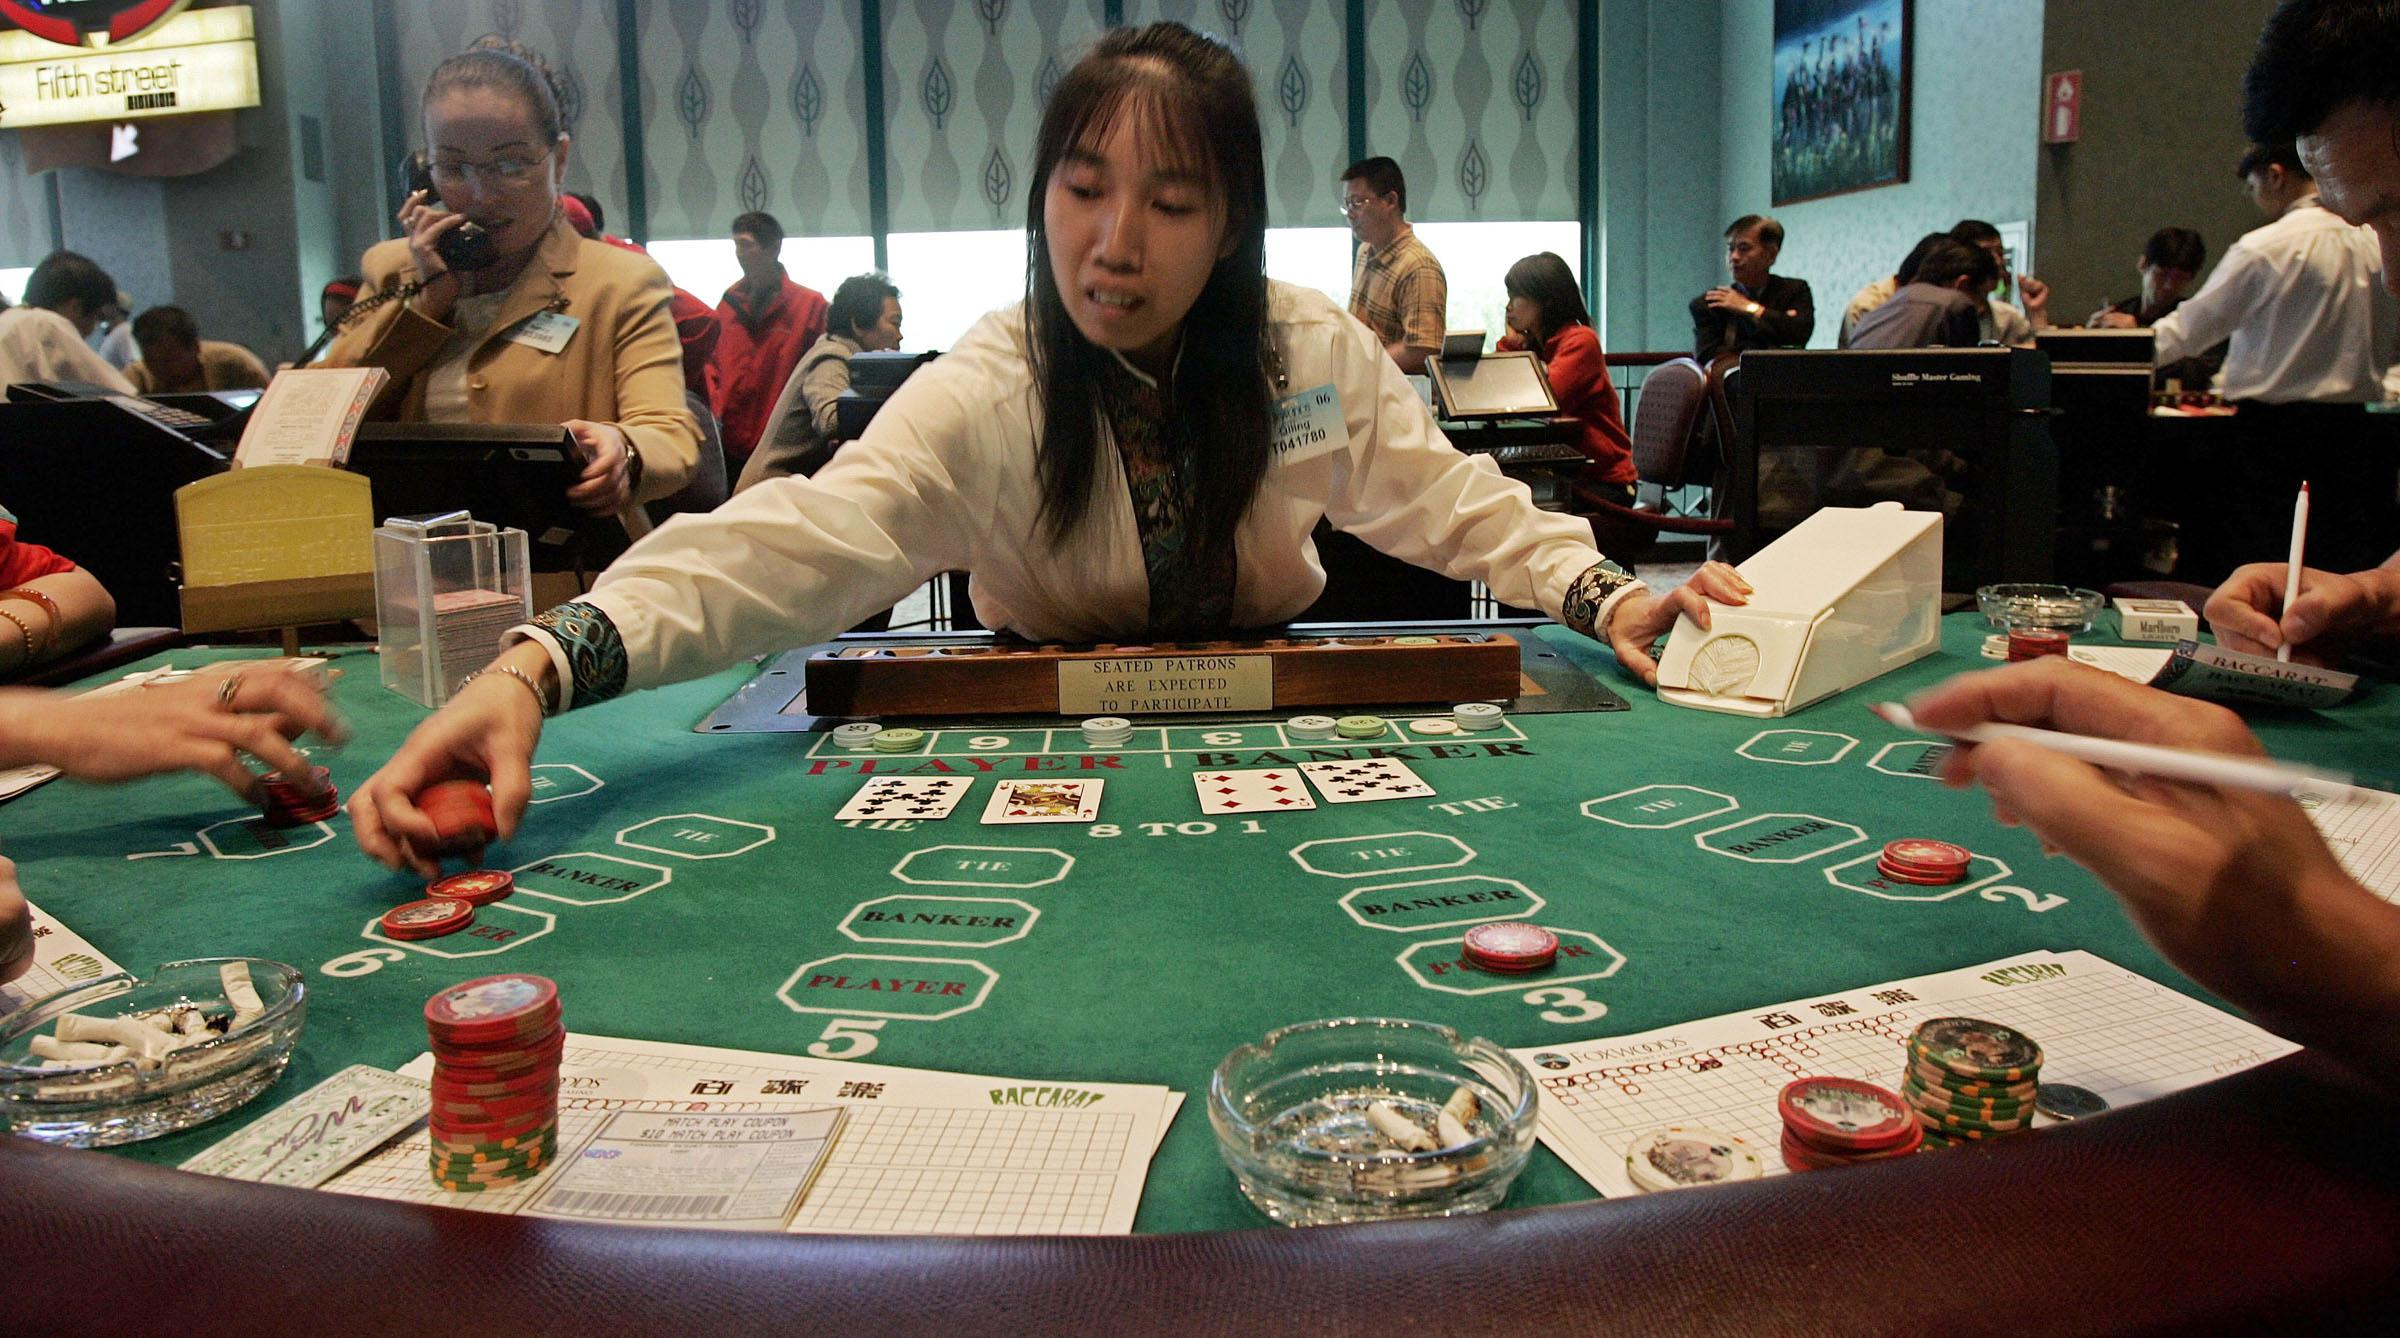 The Lure Of Luck: How Gambling Can Turn Addictive For Southeast Asian Refugees | New England Public Media